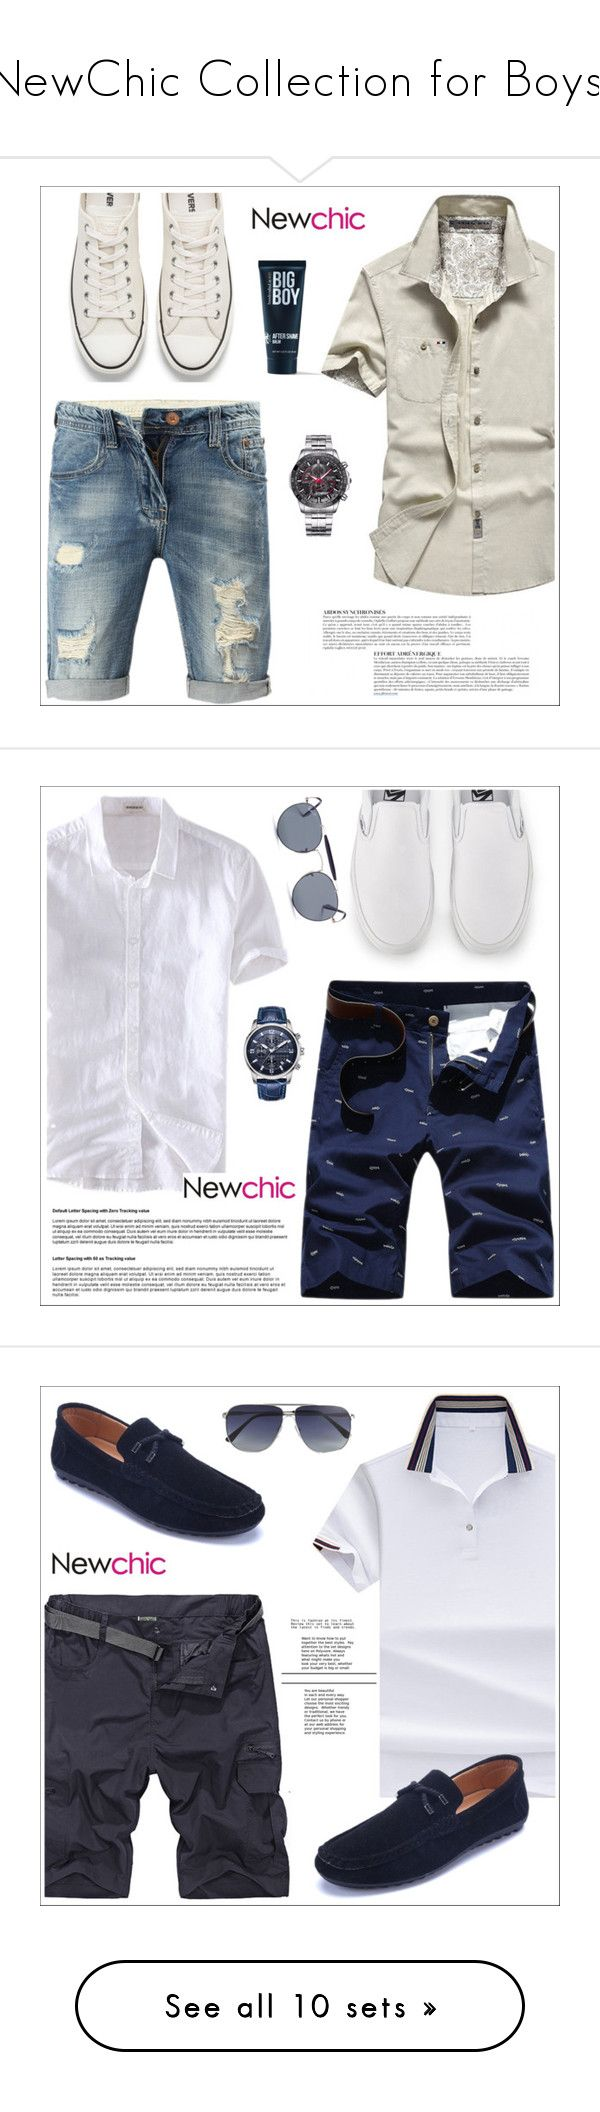 """NewChic Collection for Boys!"" by sabinakopic ❤ liked on Polyvore featuring Converse, Anja, 21 Men, men's fashion, menswear, Vans, Ray-Ban, Tom Ford, Baxter of California and Skechers"